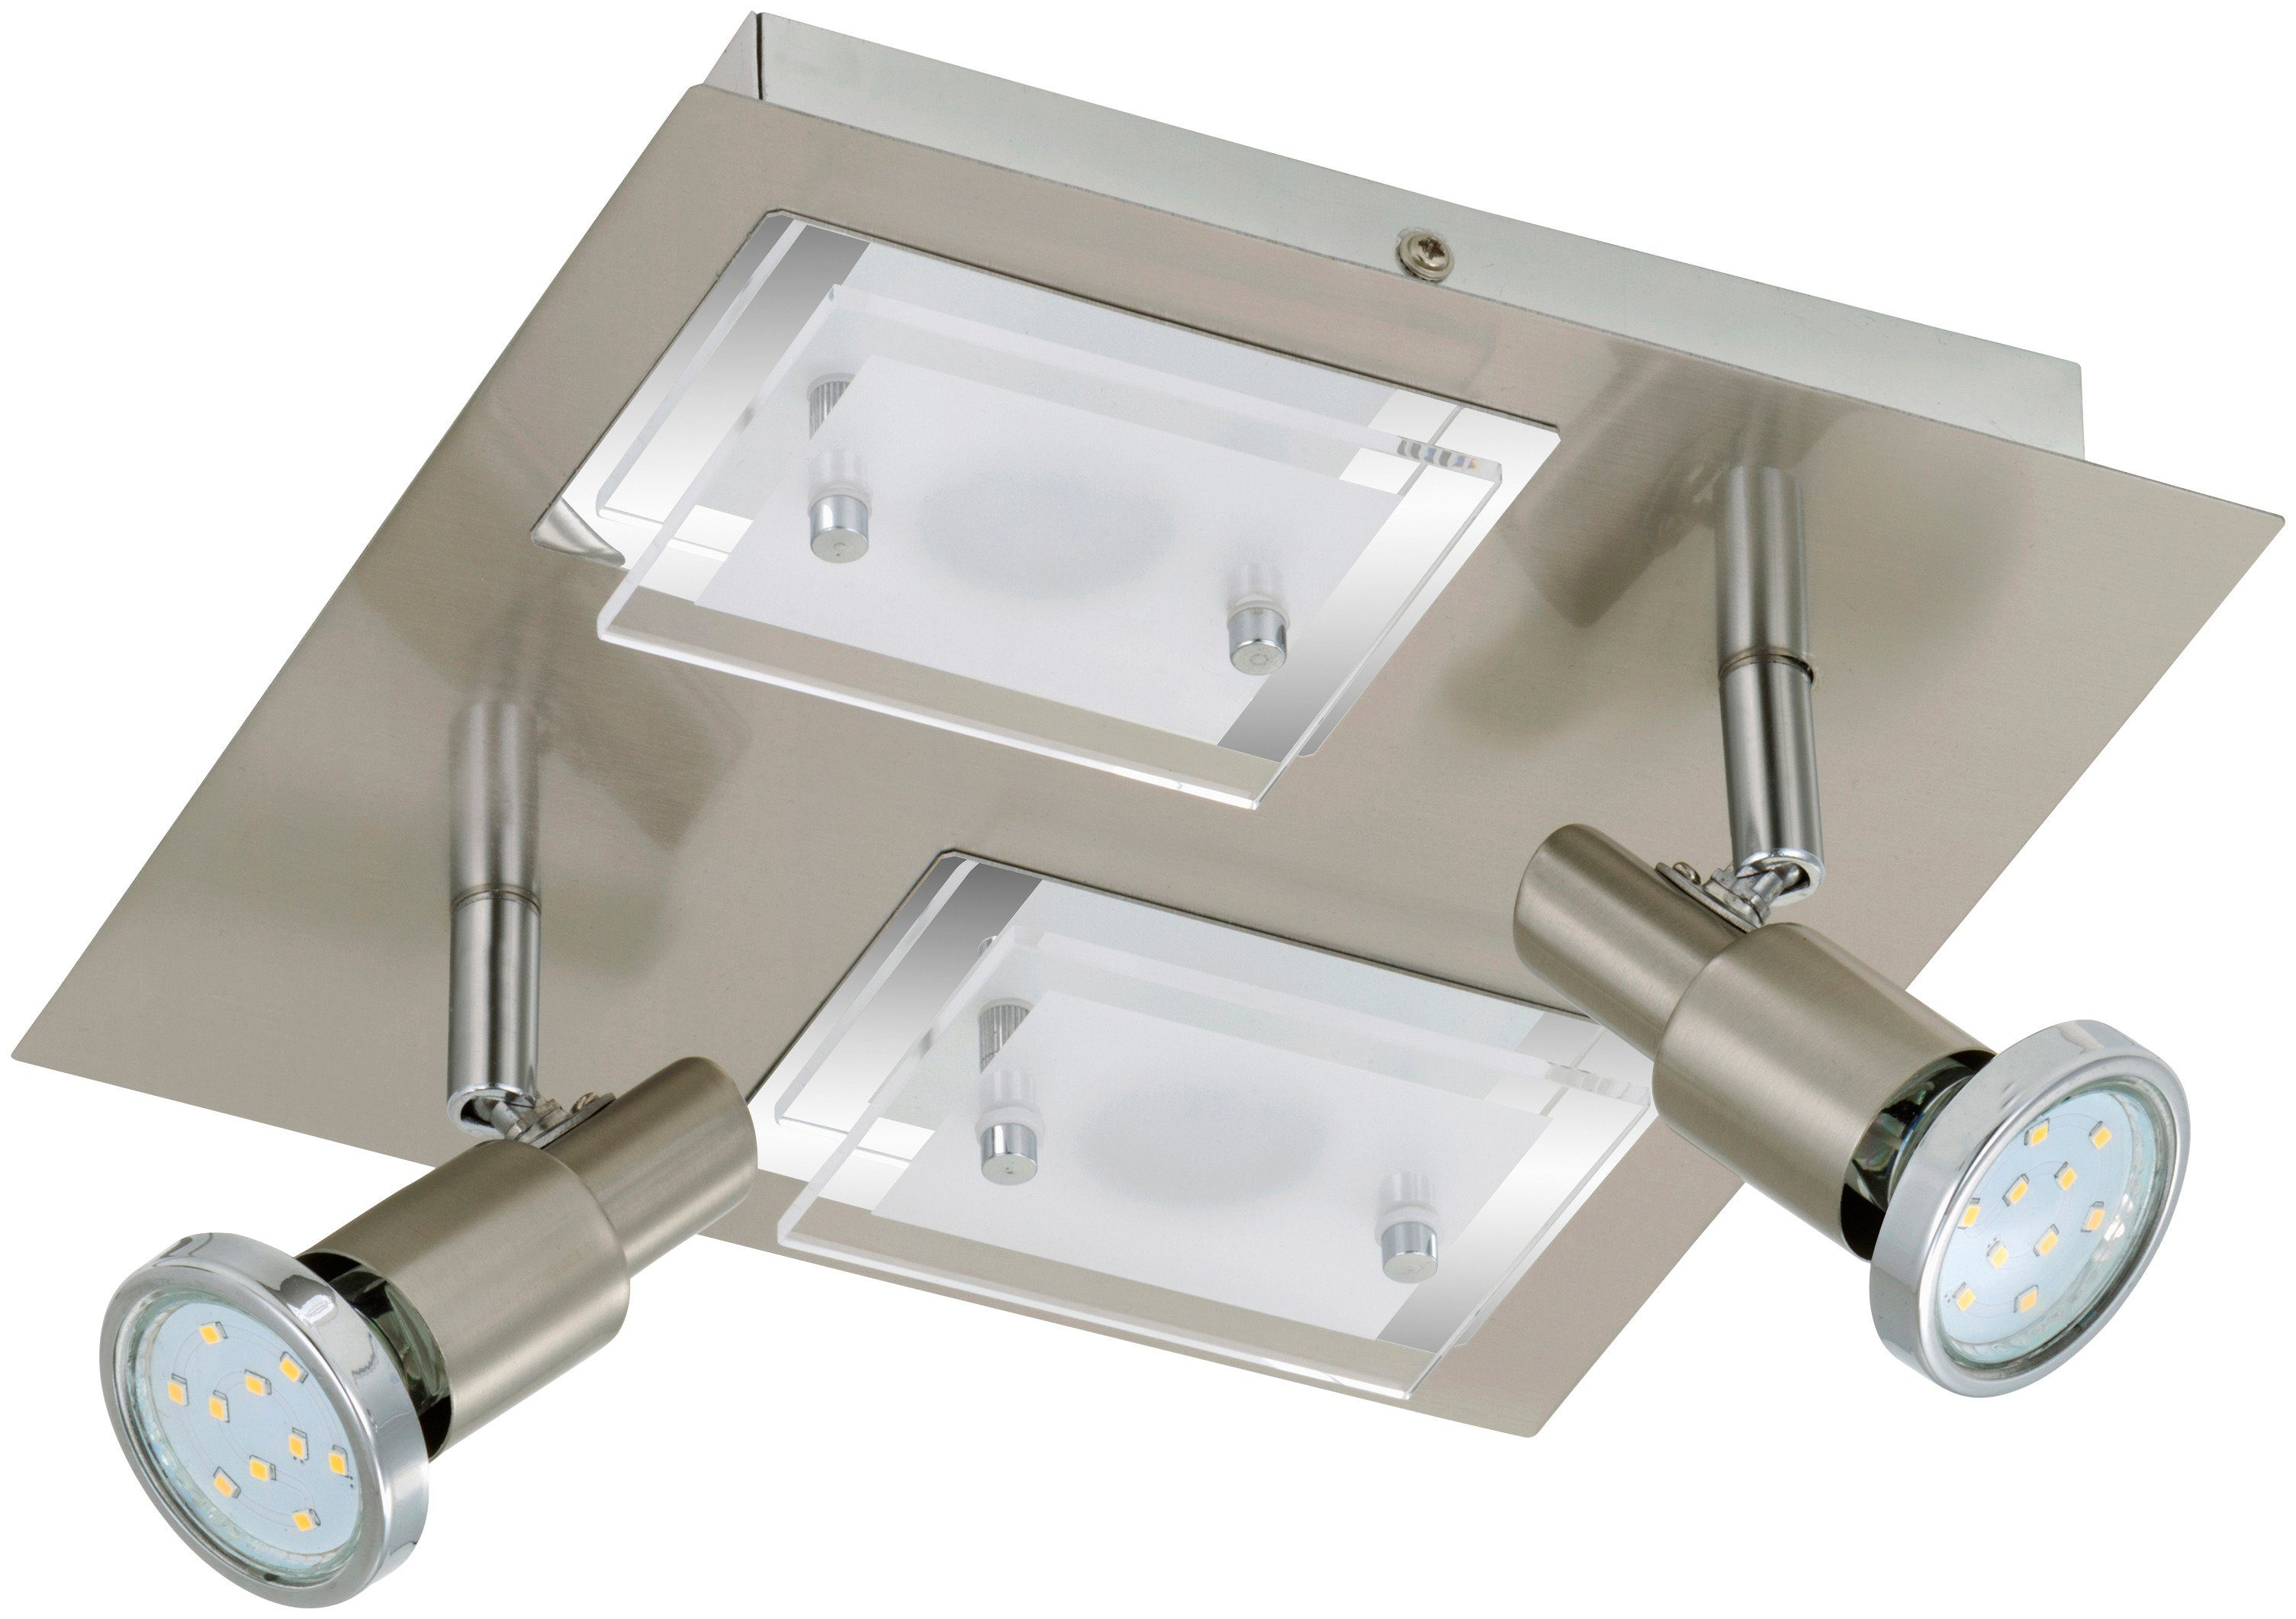 BRILONER LED-Deckenleuchte »Combinata«, 4-flammig, matt-nickel, 3W/5W